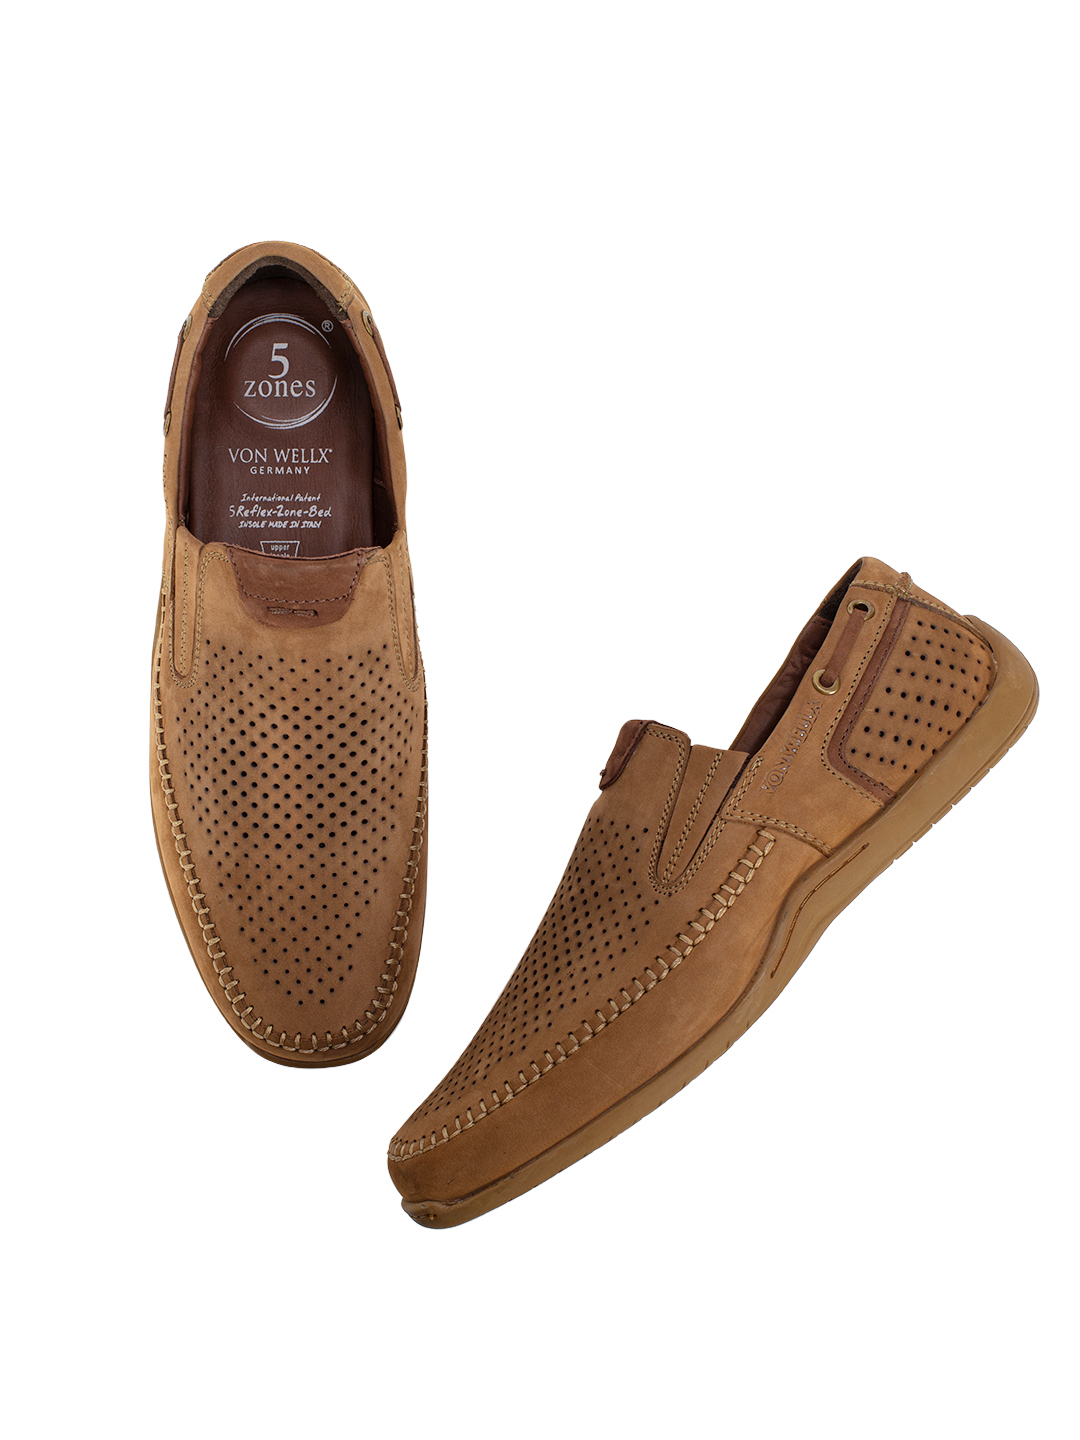 Buy Von Wellx Germany Comfort Chikoo Ian Shoes Online in Rajkot